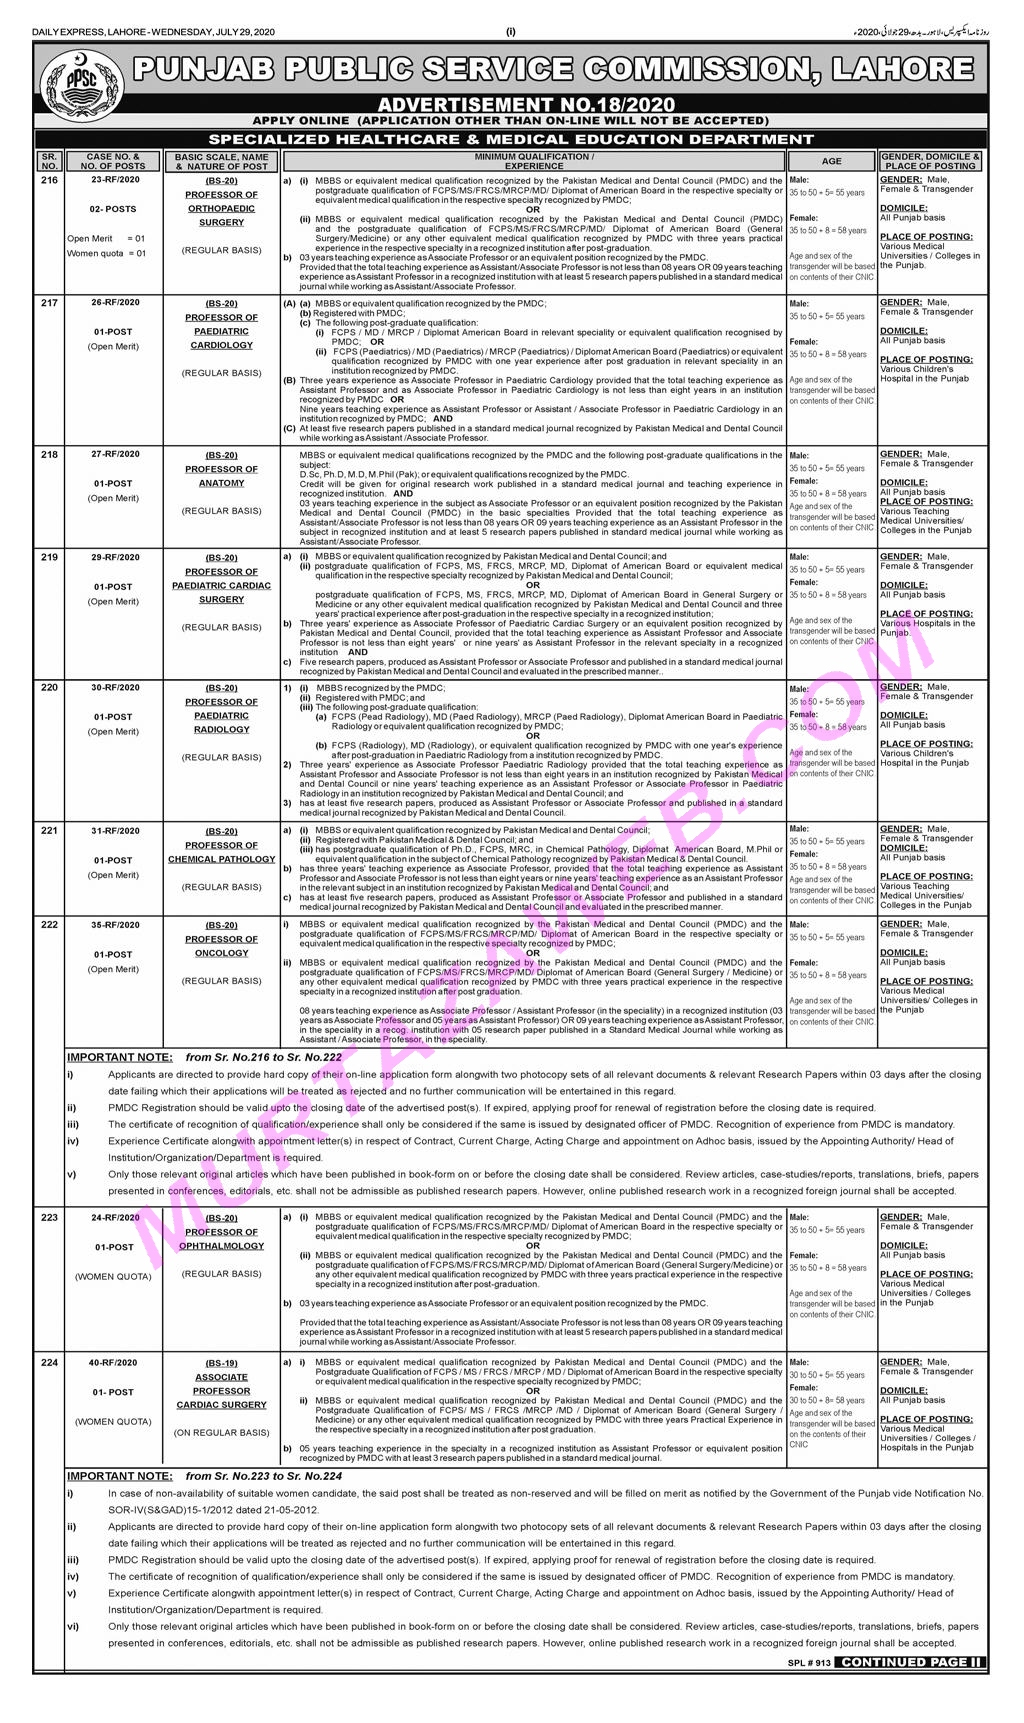 Specialized Healthcare & Medical Education Department PPSC Medical Jobs 2020